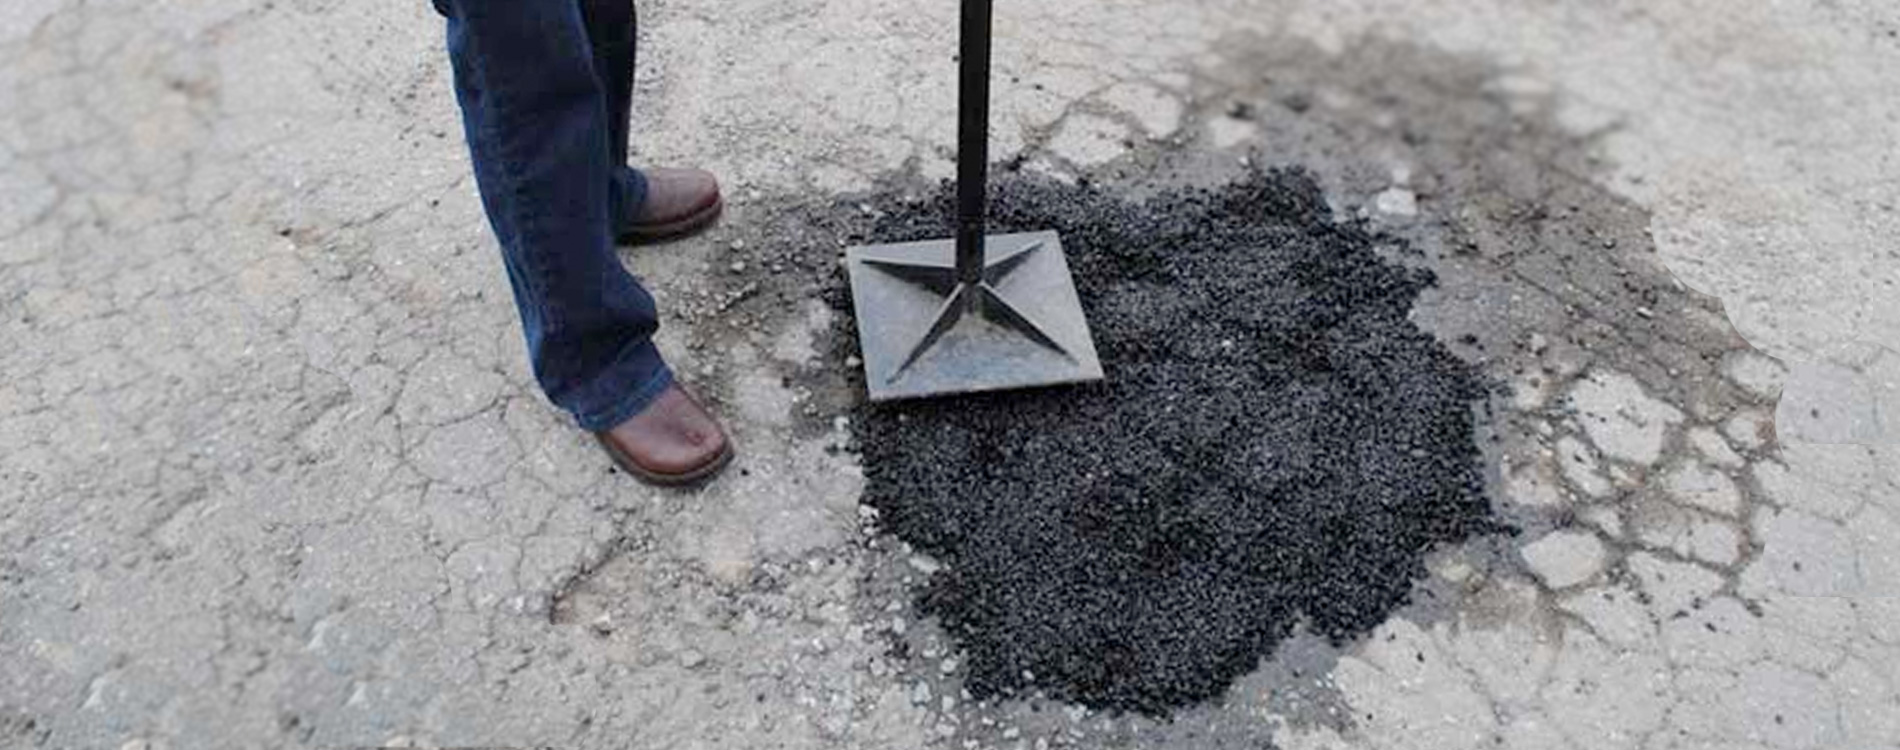 DIY Pothole Repair